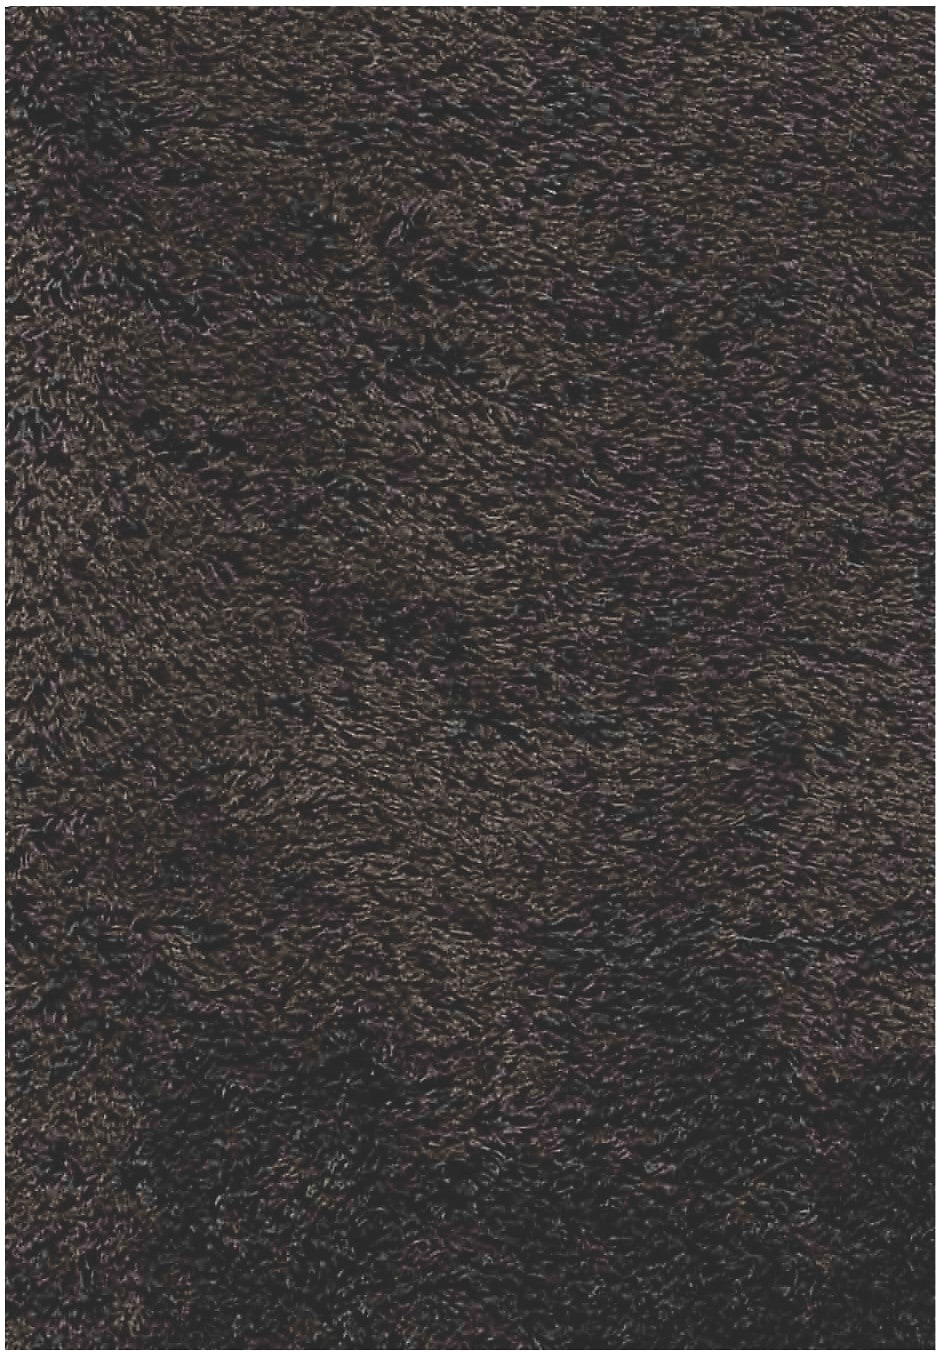 Shaggy Charcoal Area Rug – 5'x 8'